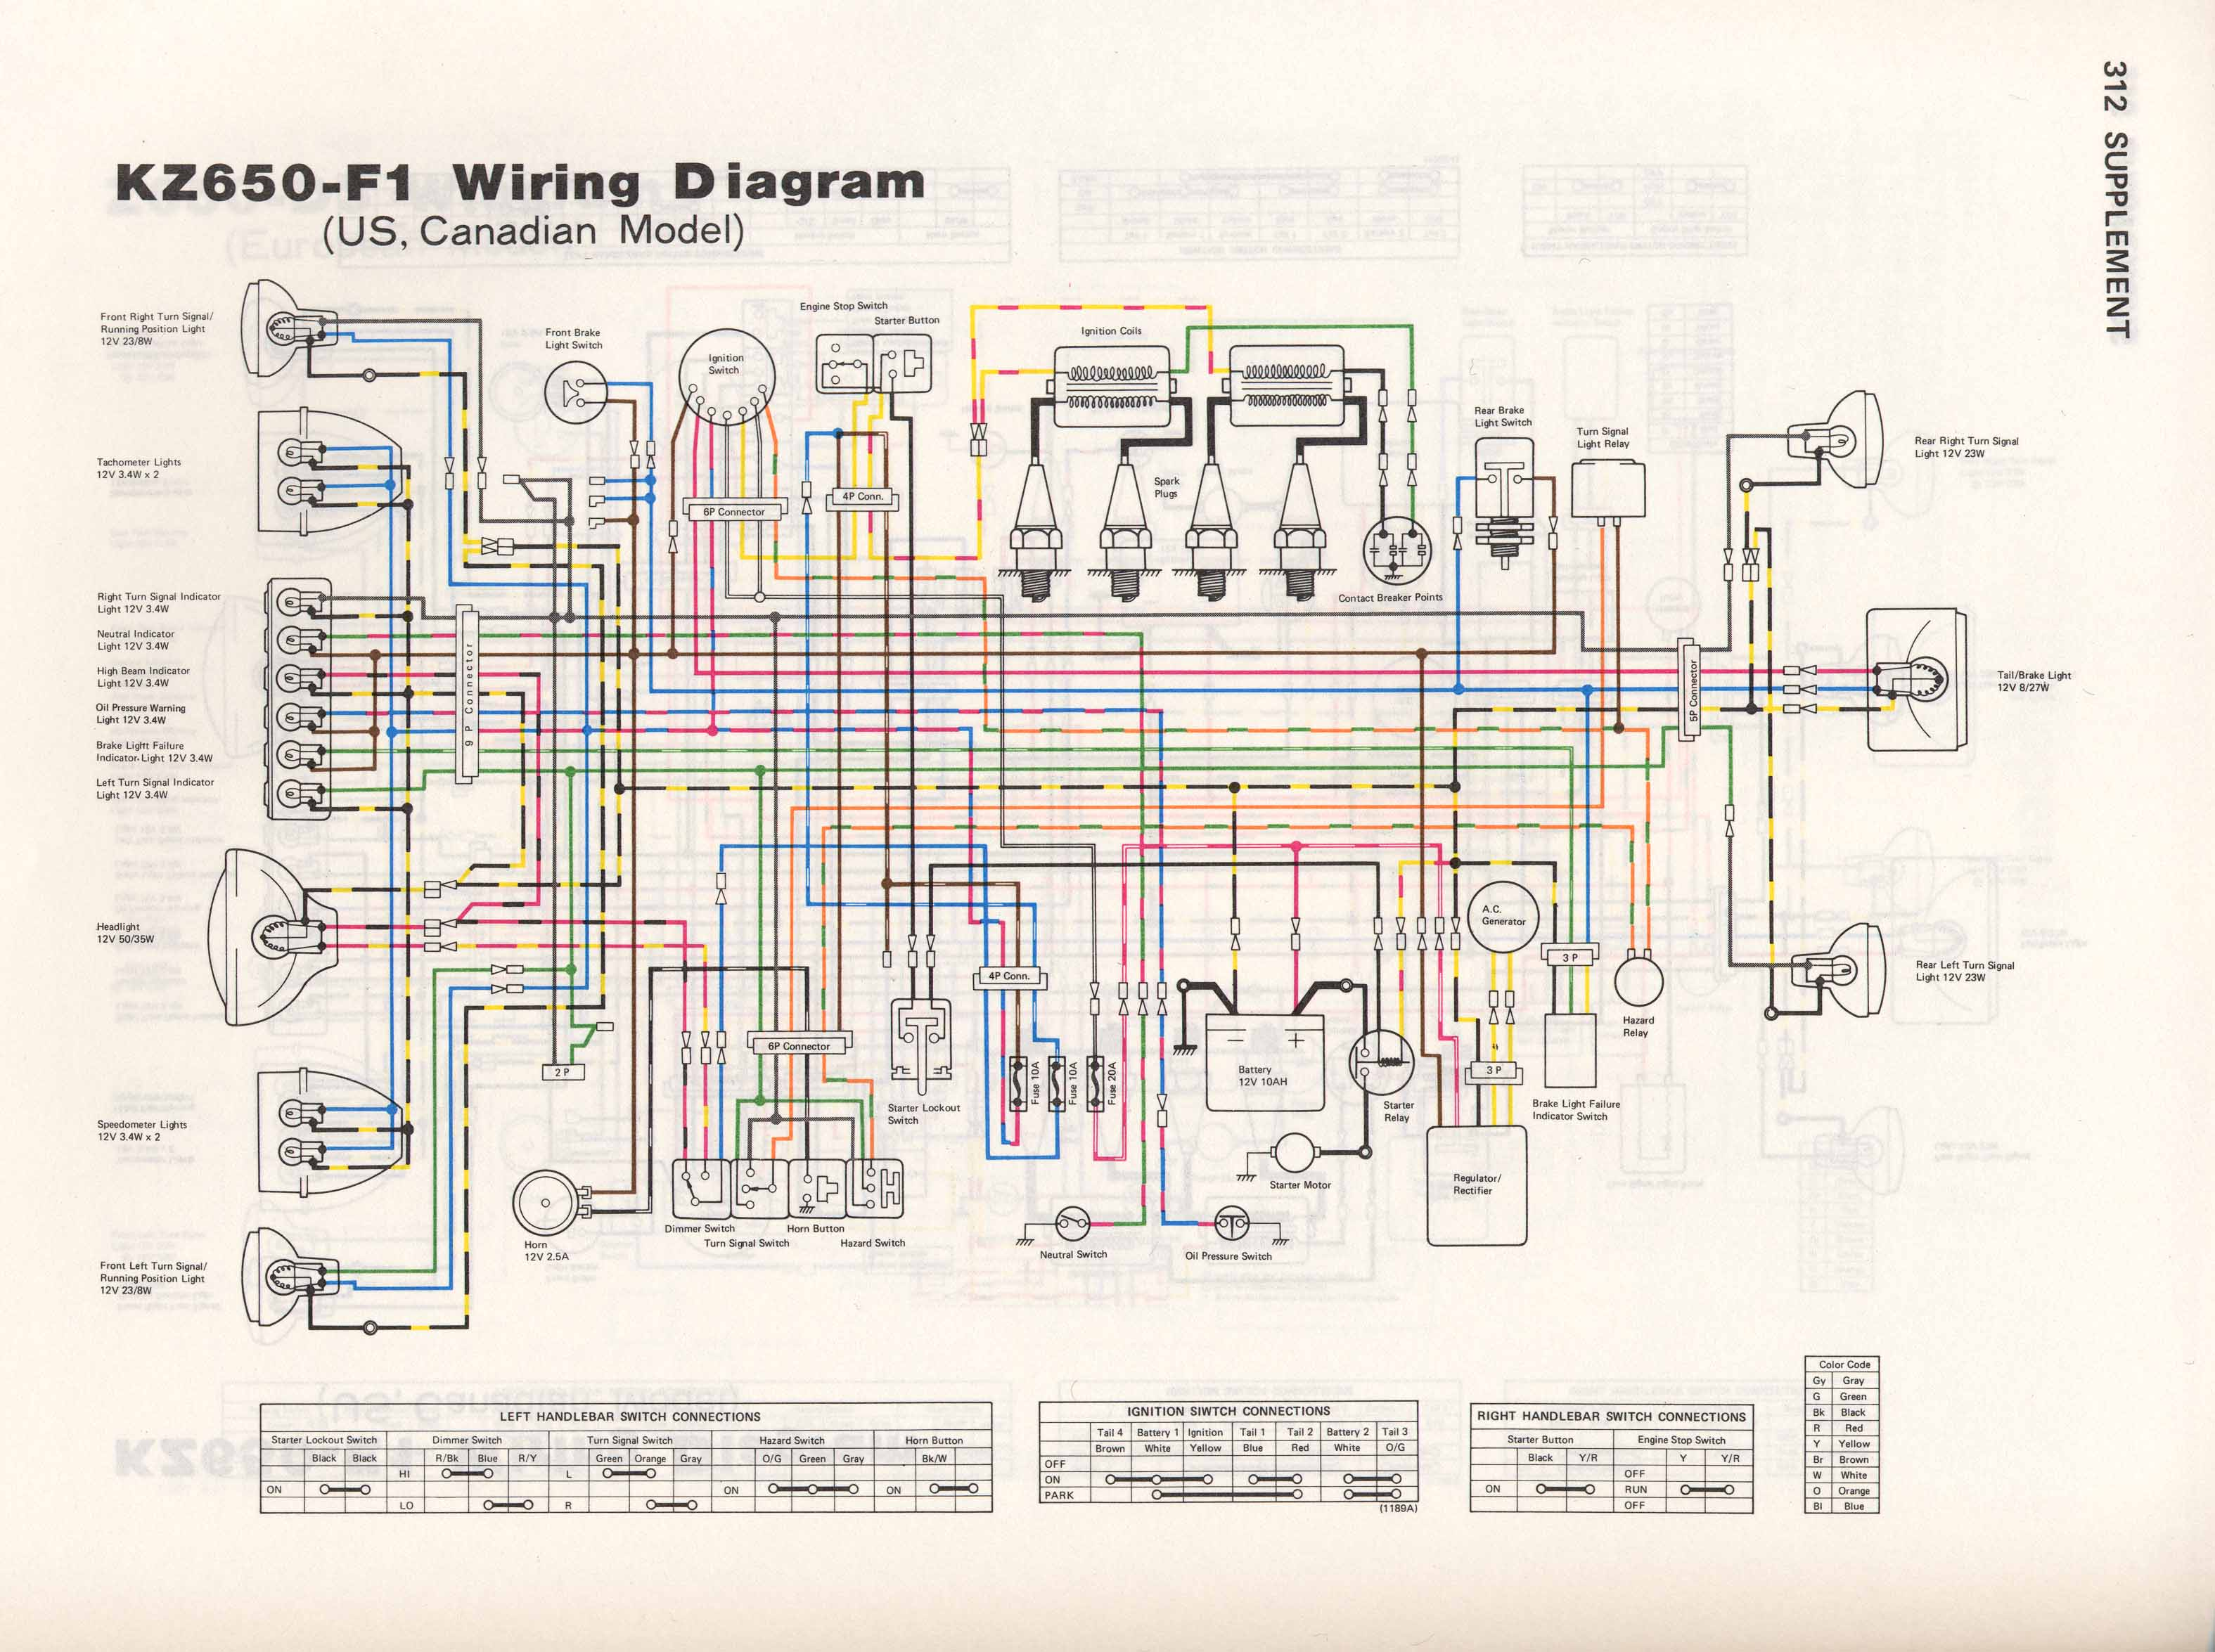 KZ650 F1 kz650 info wiring diagrams kz750 wiring diagram at n-0.co